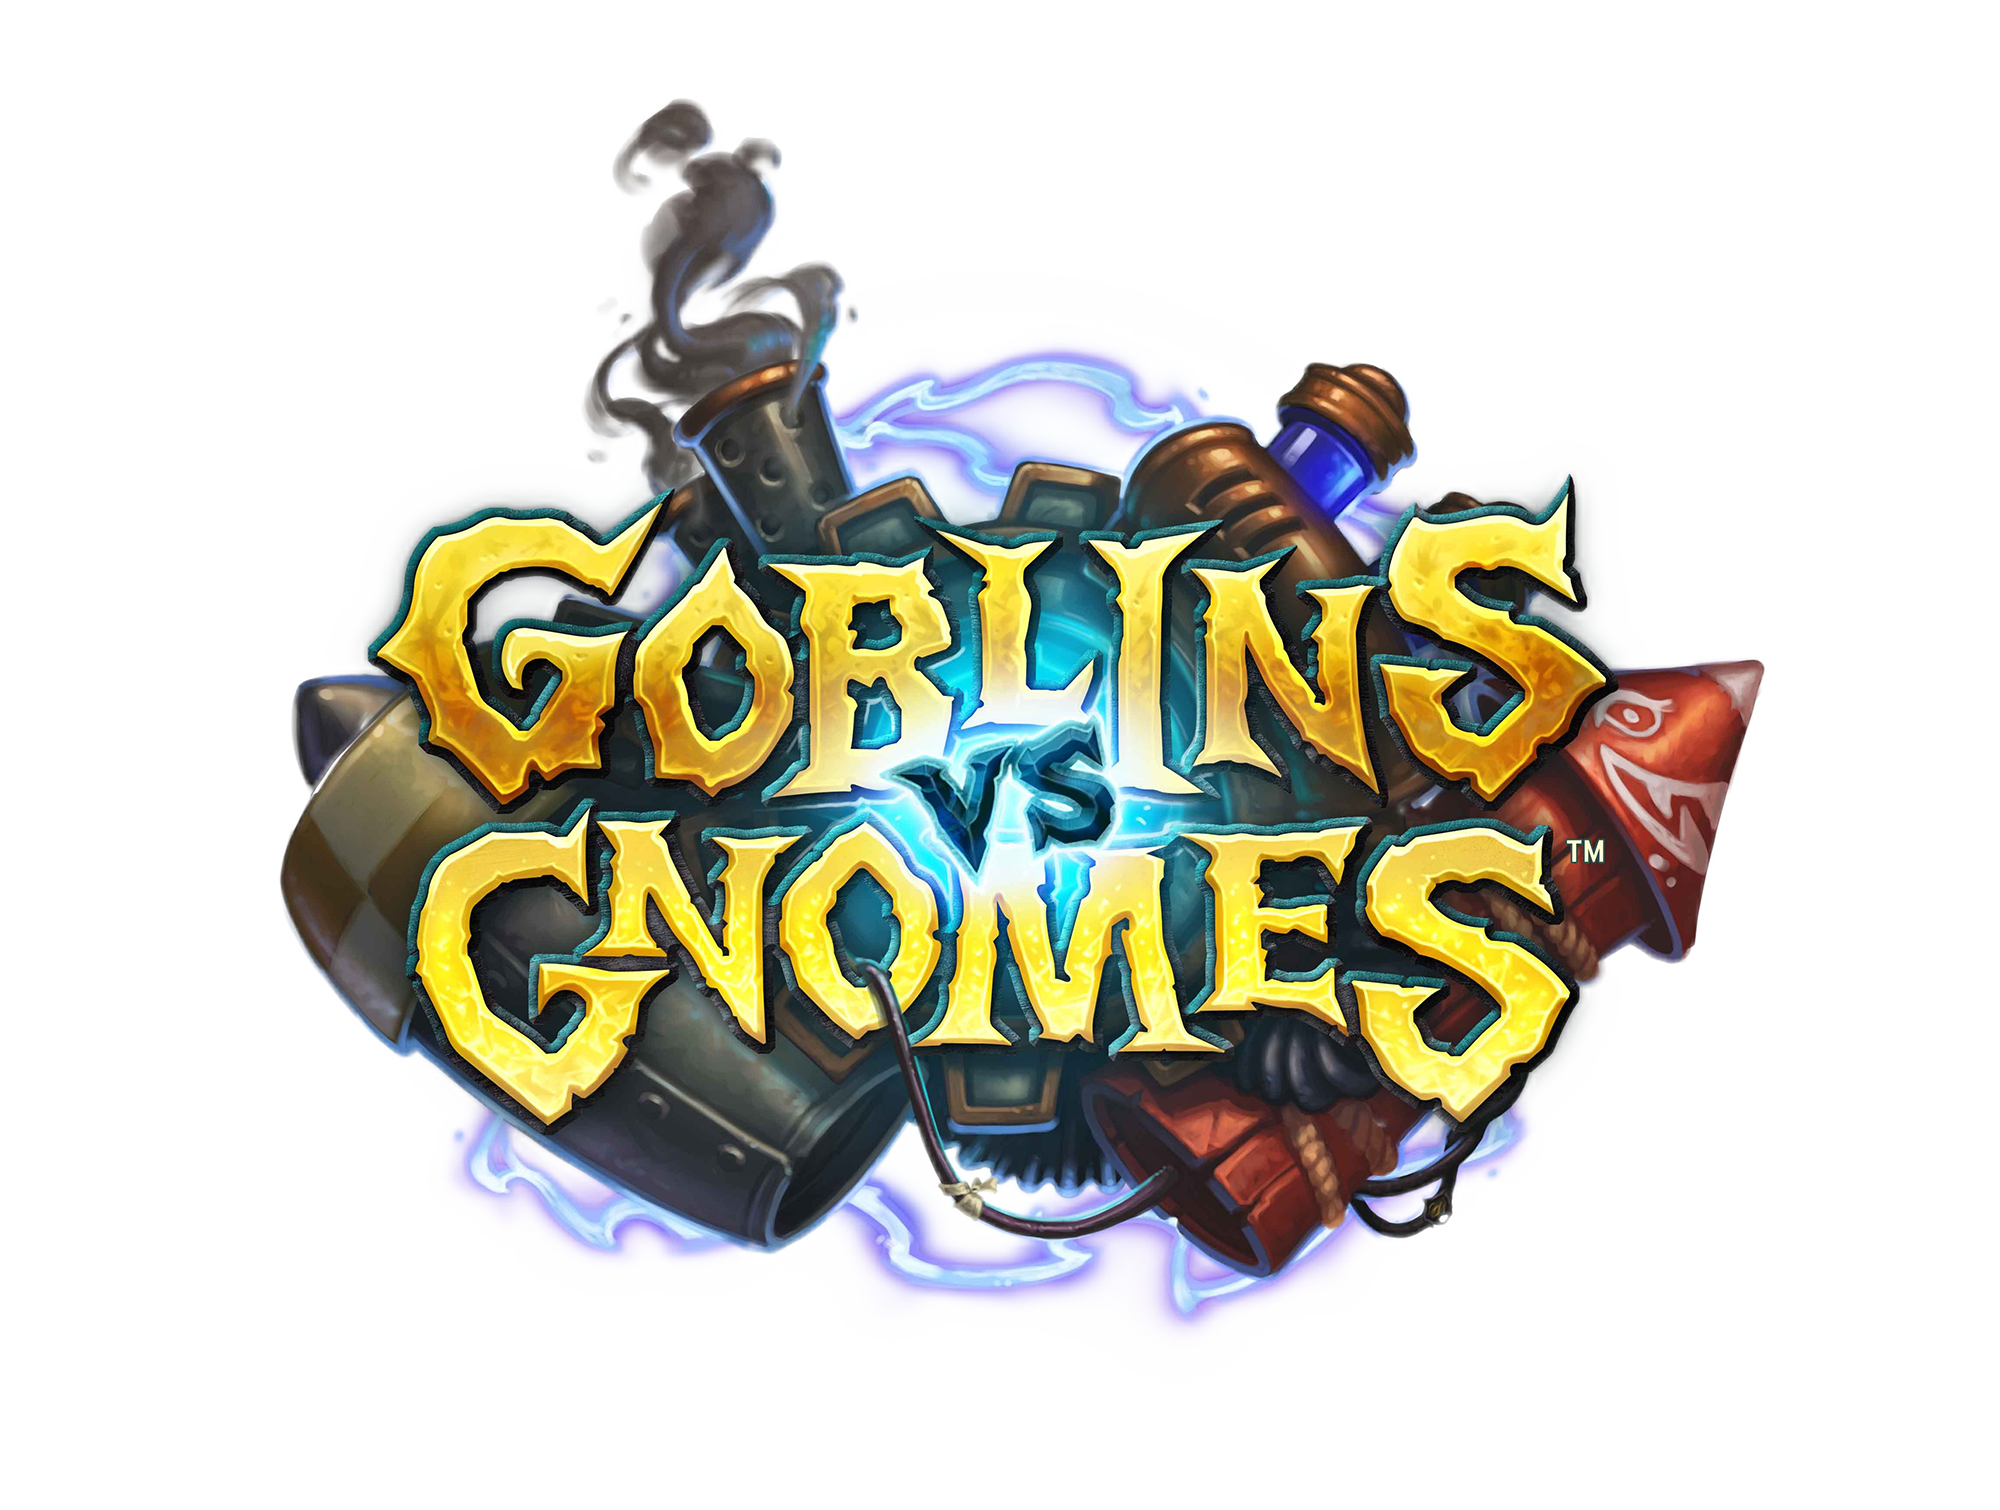 Logo Goblins Vs Gnomes Artist Blizzard Entertainment Blizzard